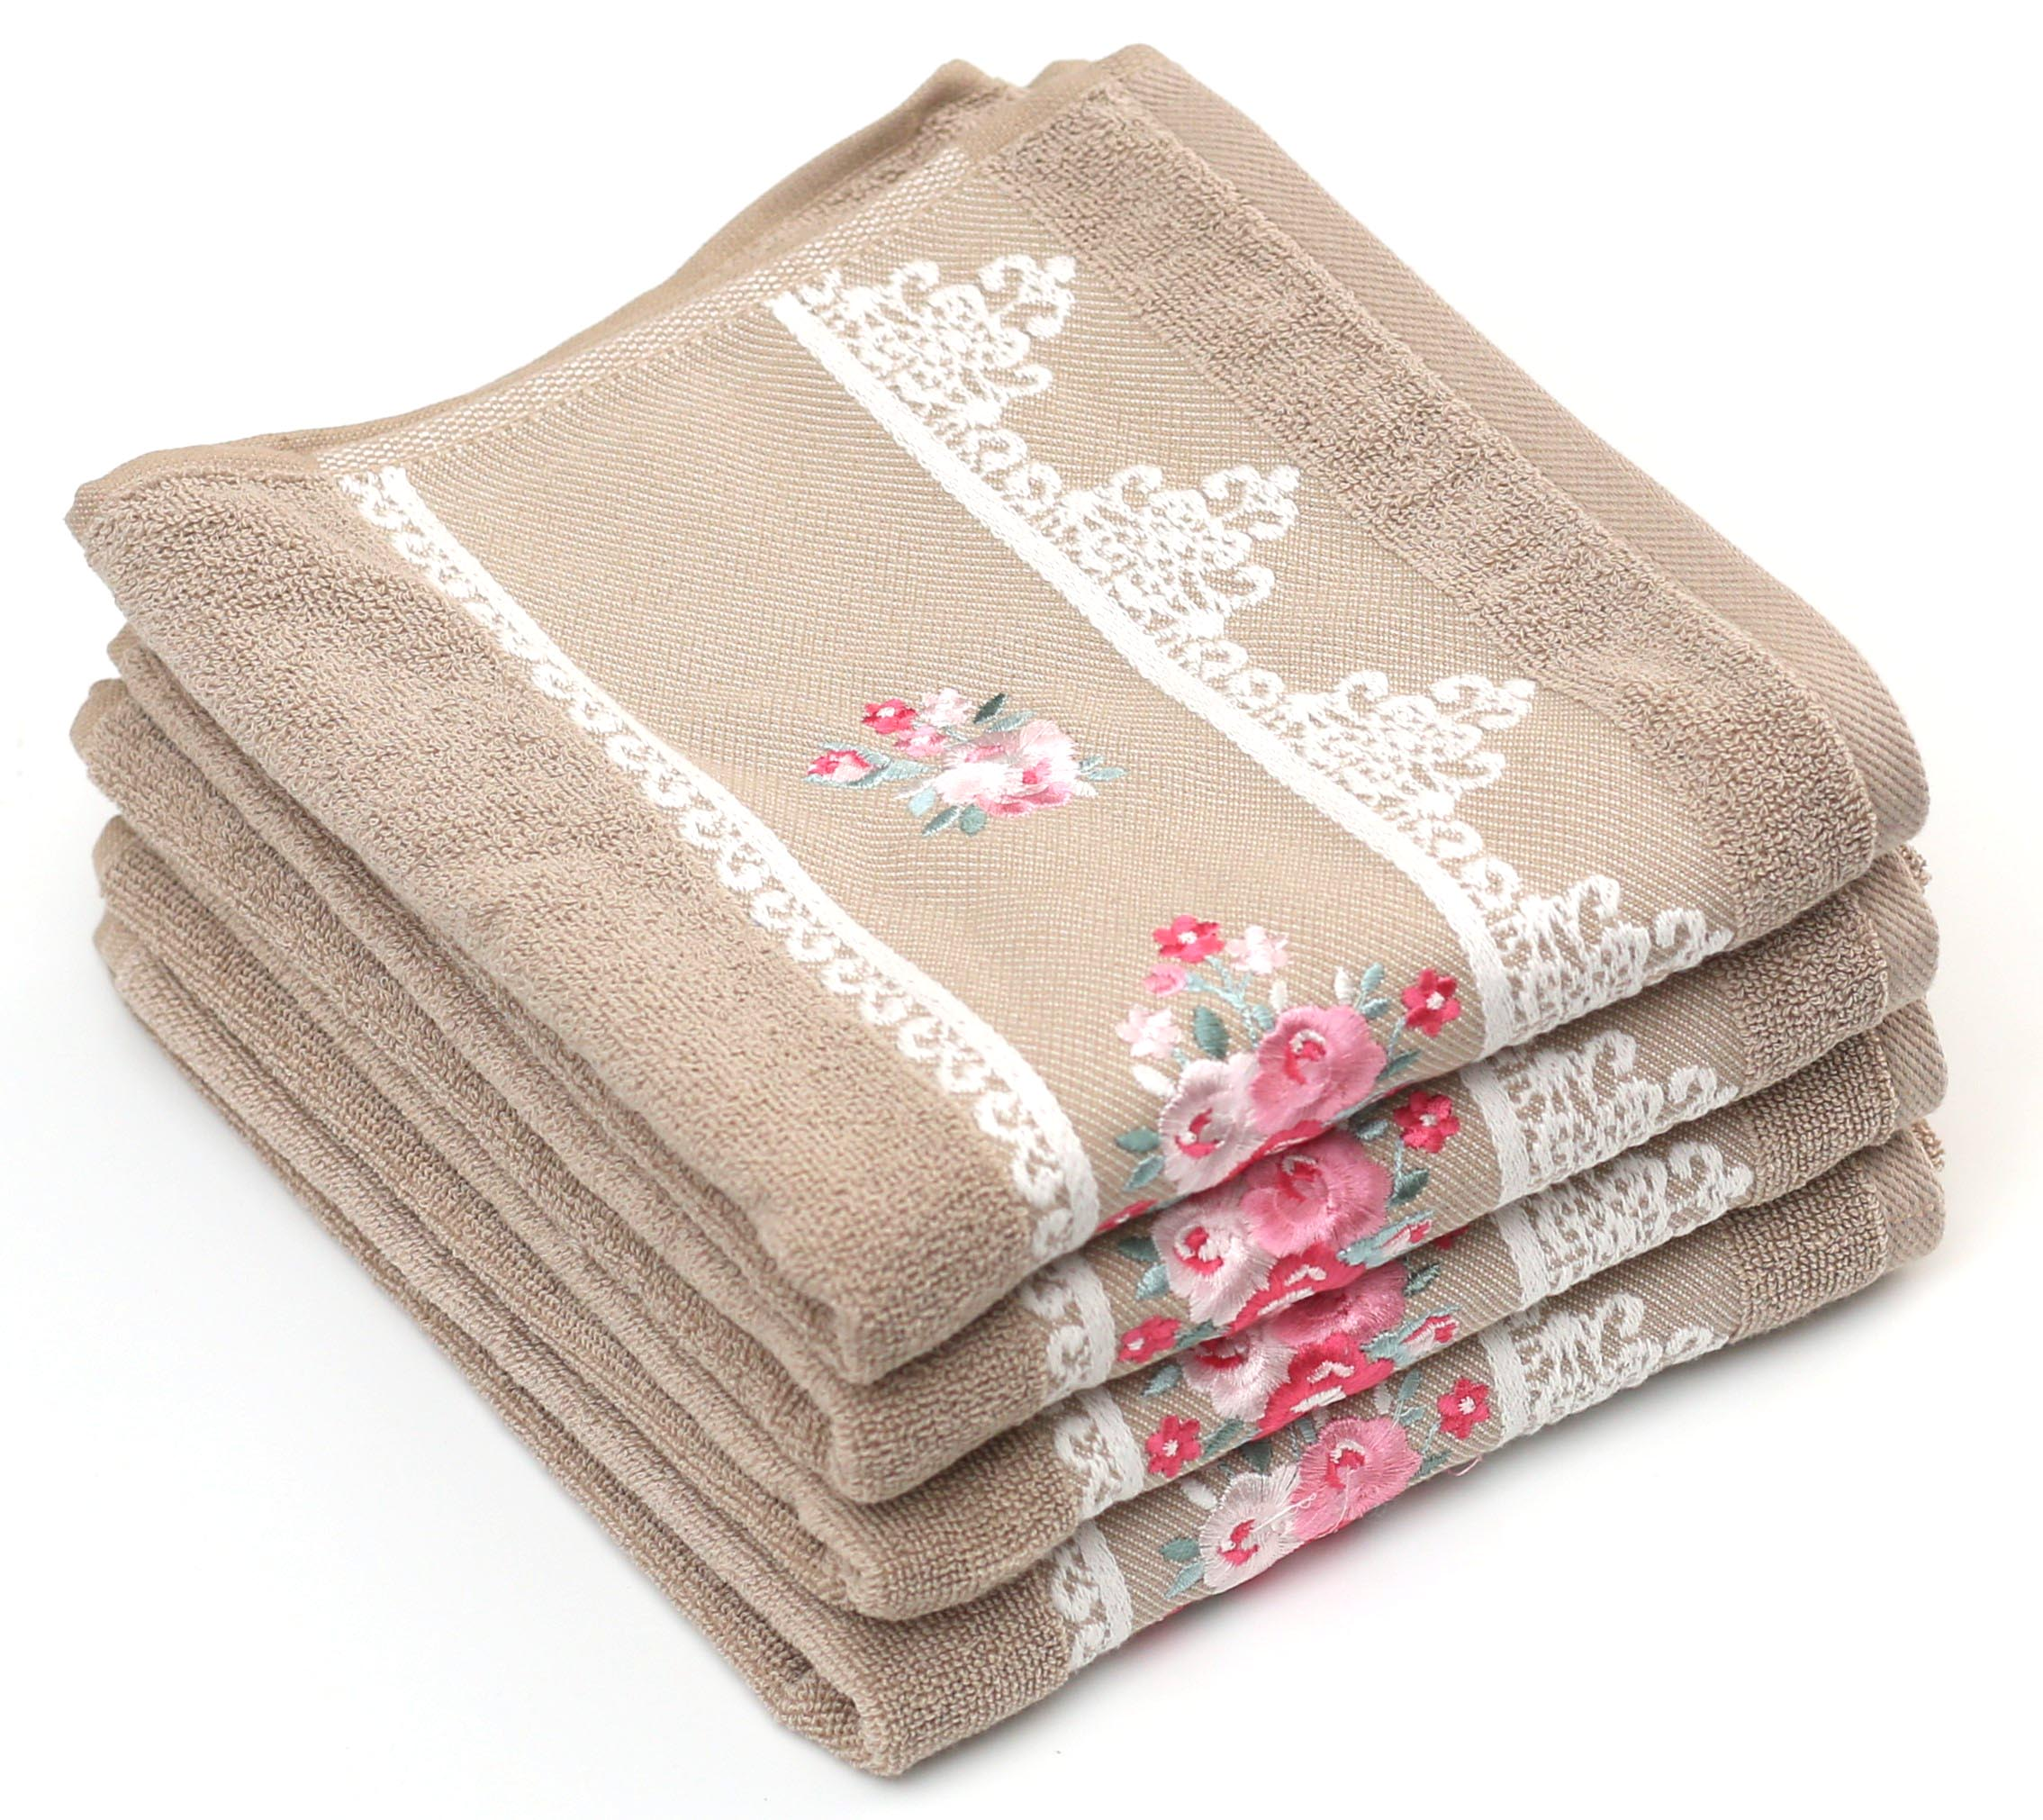 Ozdilek - Super Soft Large Hand Towels 20x35 inches - 100% Pure Turkish  Cotton - Ideal for Daily Use - Set of 4 (Lavista - Beige)